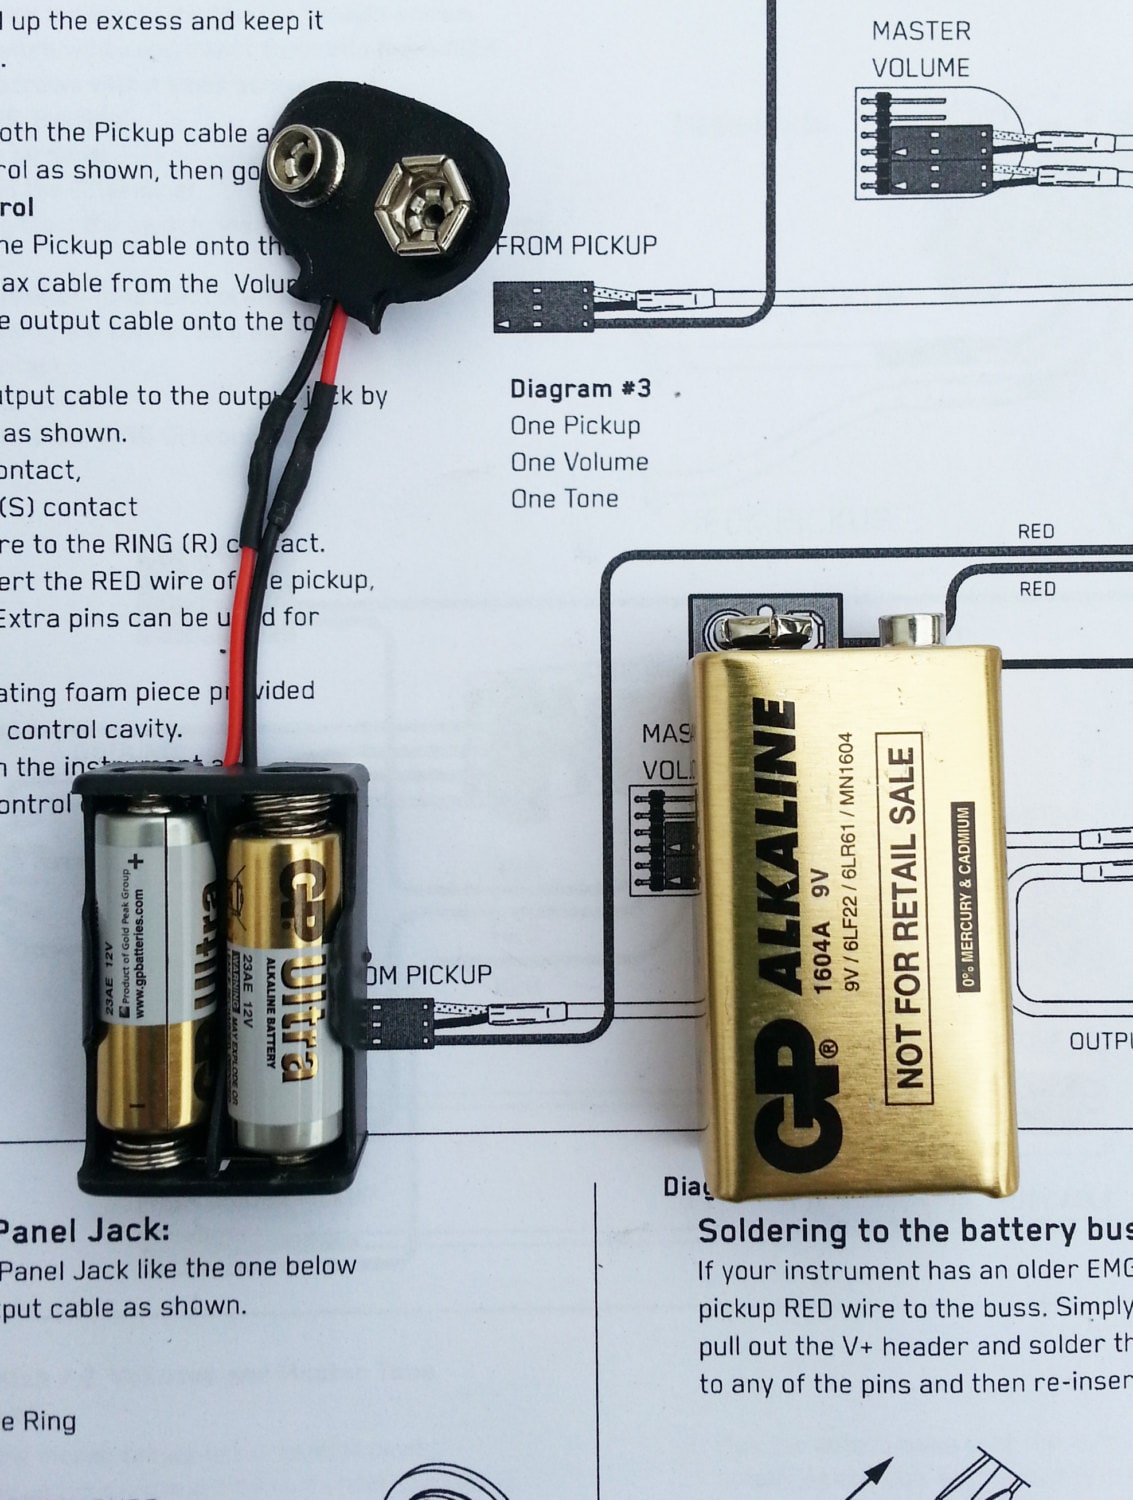 Pleasant Emg 24 Volt Solderless Active Pickup Mod For 60 81 85 And 89 Etsy Wiring Database Ittabxeroyuccorg